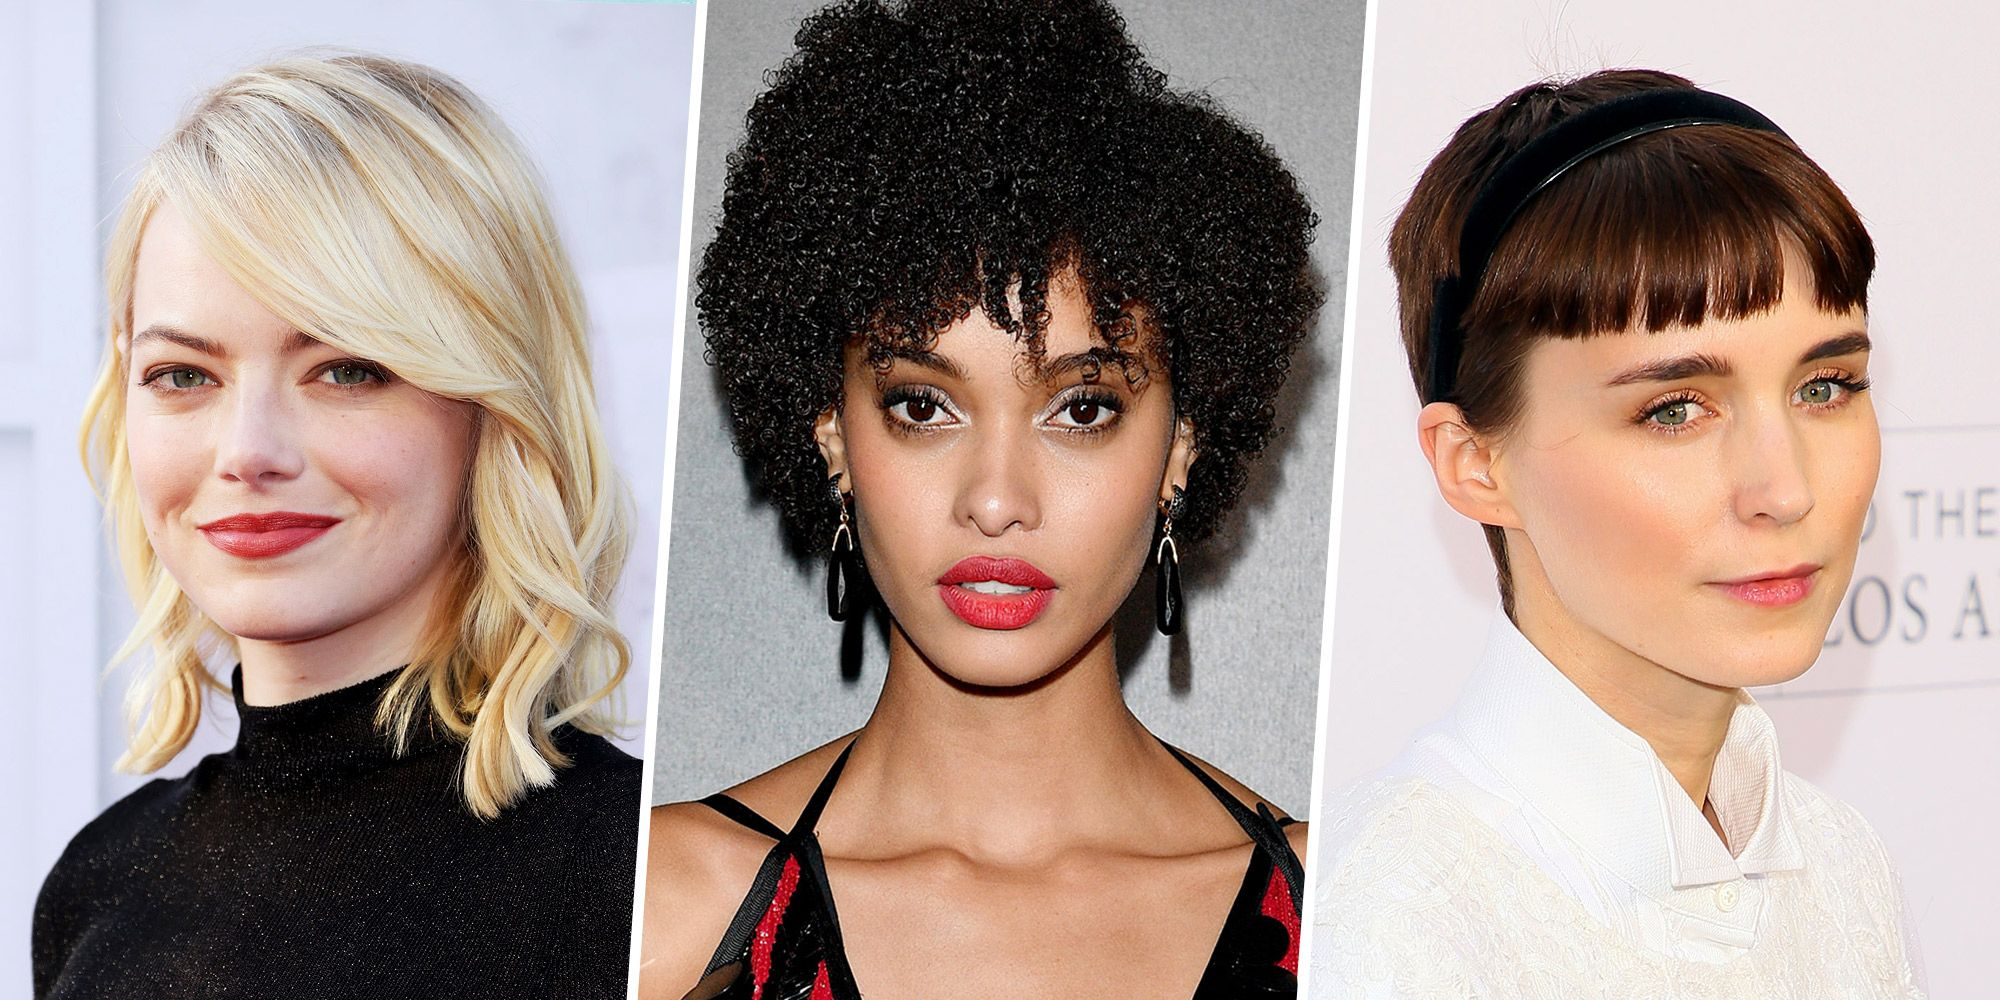 The 65 Best Short Hairstyles and Haircuts to Try Right Now